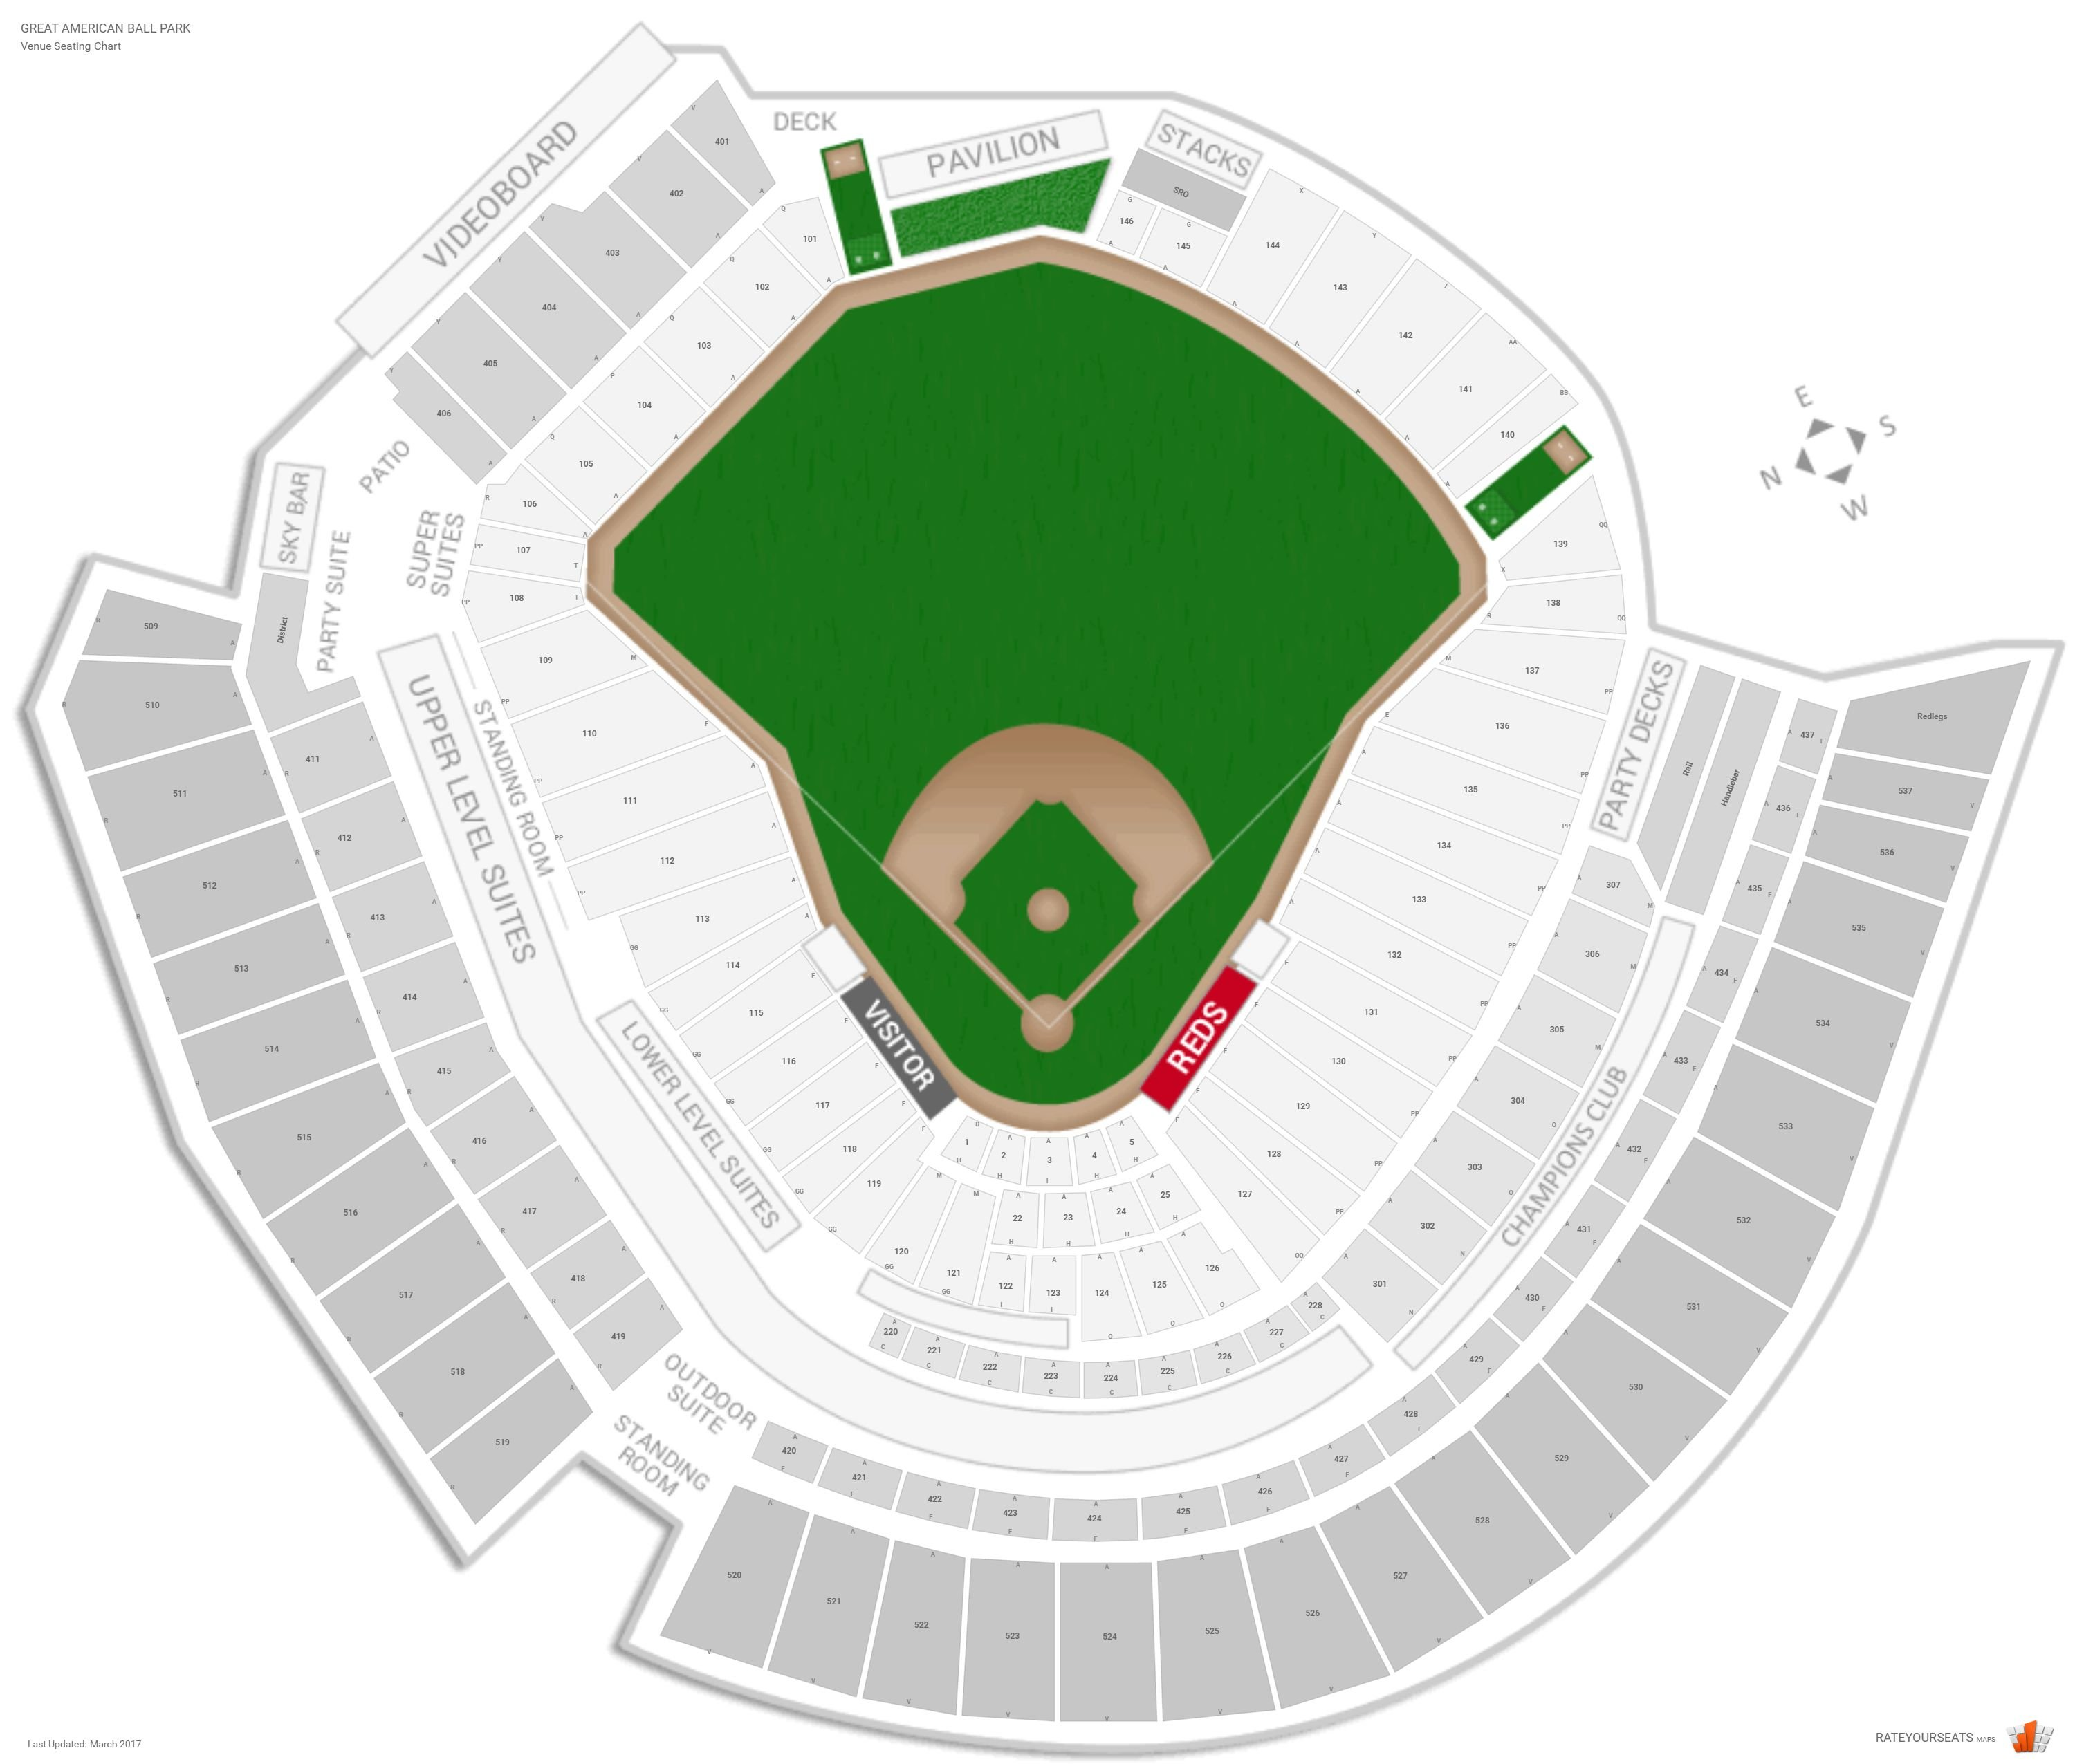 Cincinnati Reds Seating Guide - Great American Ball Park ... on cincinnati reds field map, cincinnati reds program, cincinnati reds rosie, cincinnati reds team, cincinnati reds logo 2012, cincinnati reds hall of fame, cincinnati reds players, cincinnati reds mustache, cincinnati reds artwork, cincinnati reds promotions, great american ballpark map, cincinnati reds c logo, cincinnati reds ticket prices, cincinnati bengals stadium map, cincinnati reds mr. red, cincinnati reds symbol, cincinnati reds nasty boys, cincinnati reds 2015,